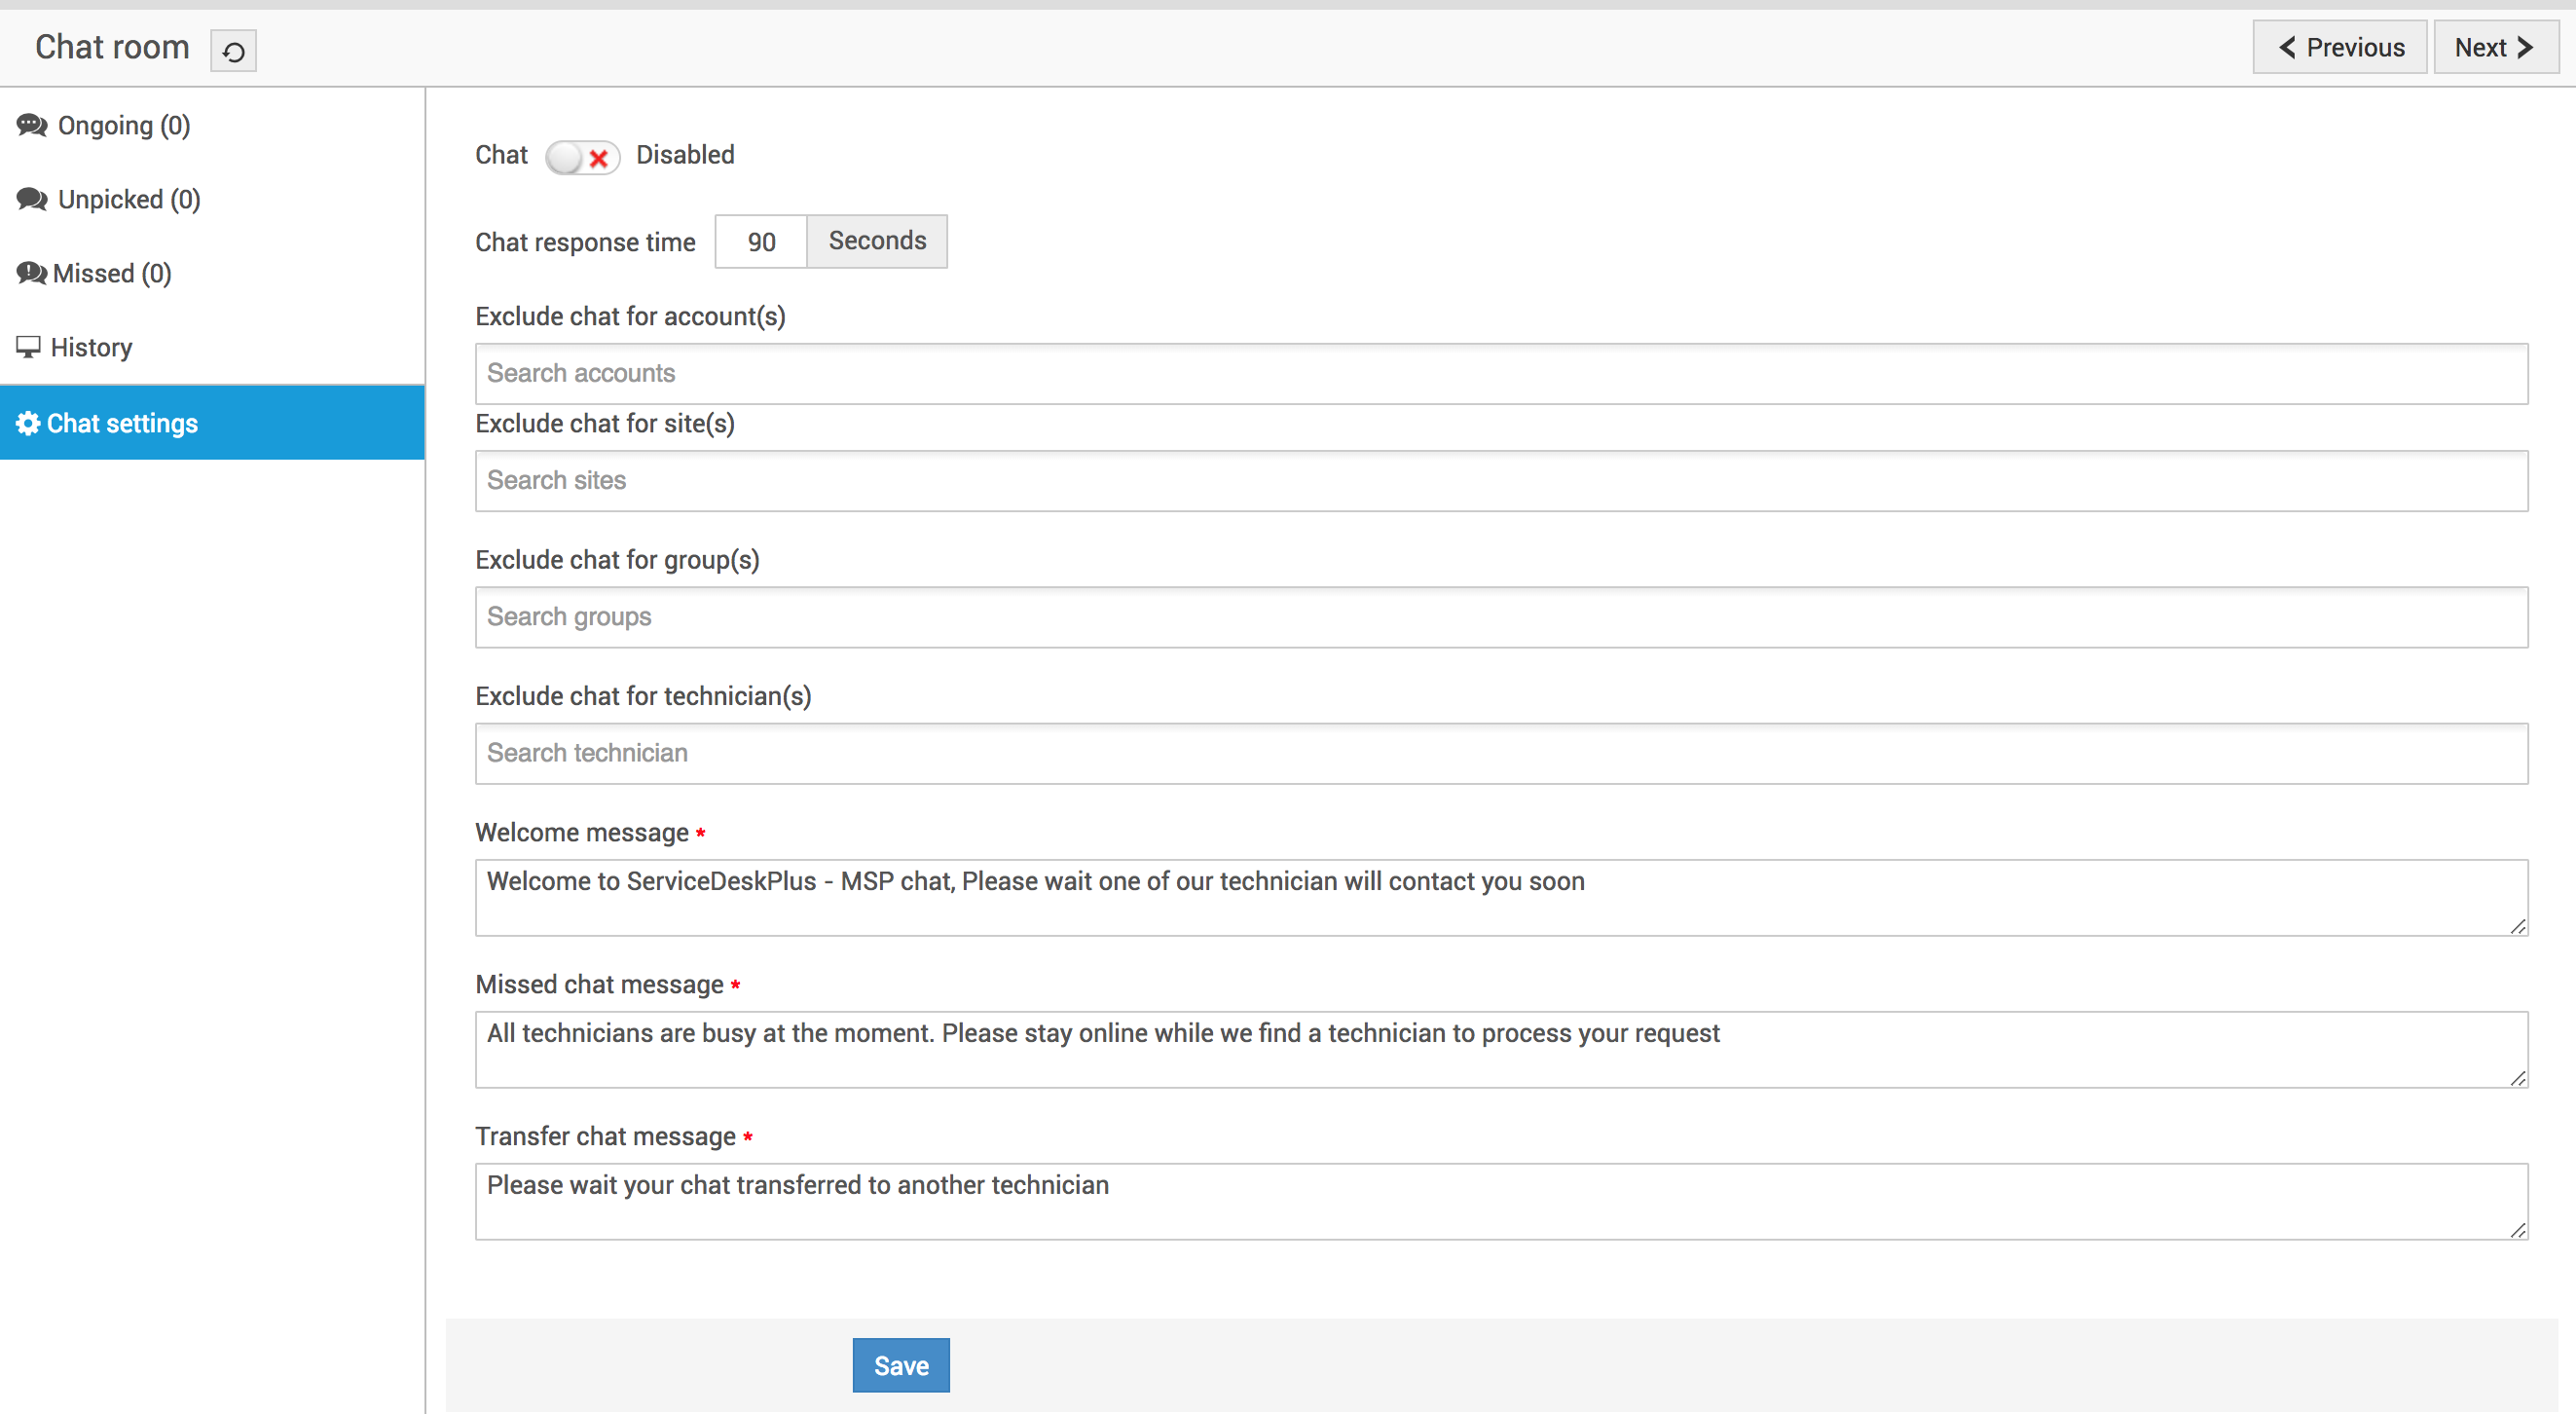 Configure Live Chat Settings in ServiceDesk Plus